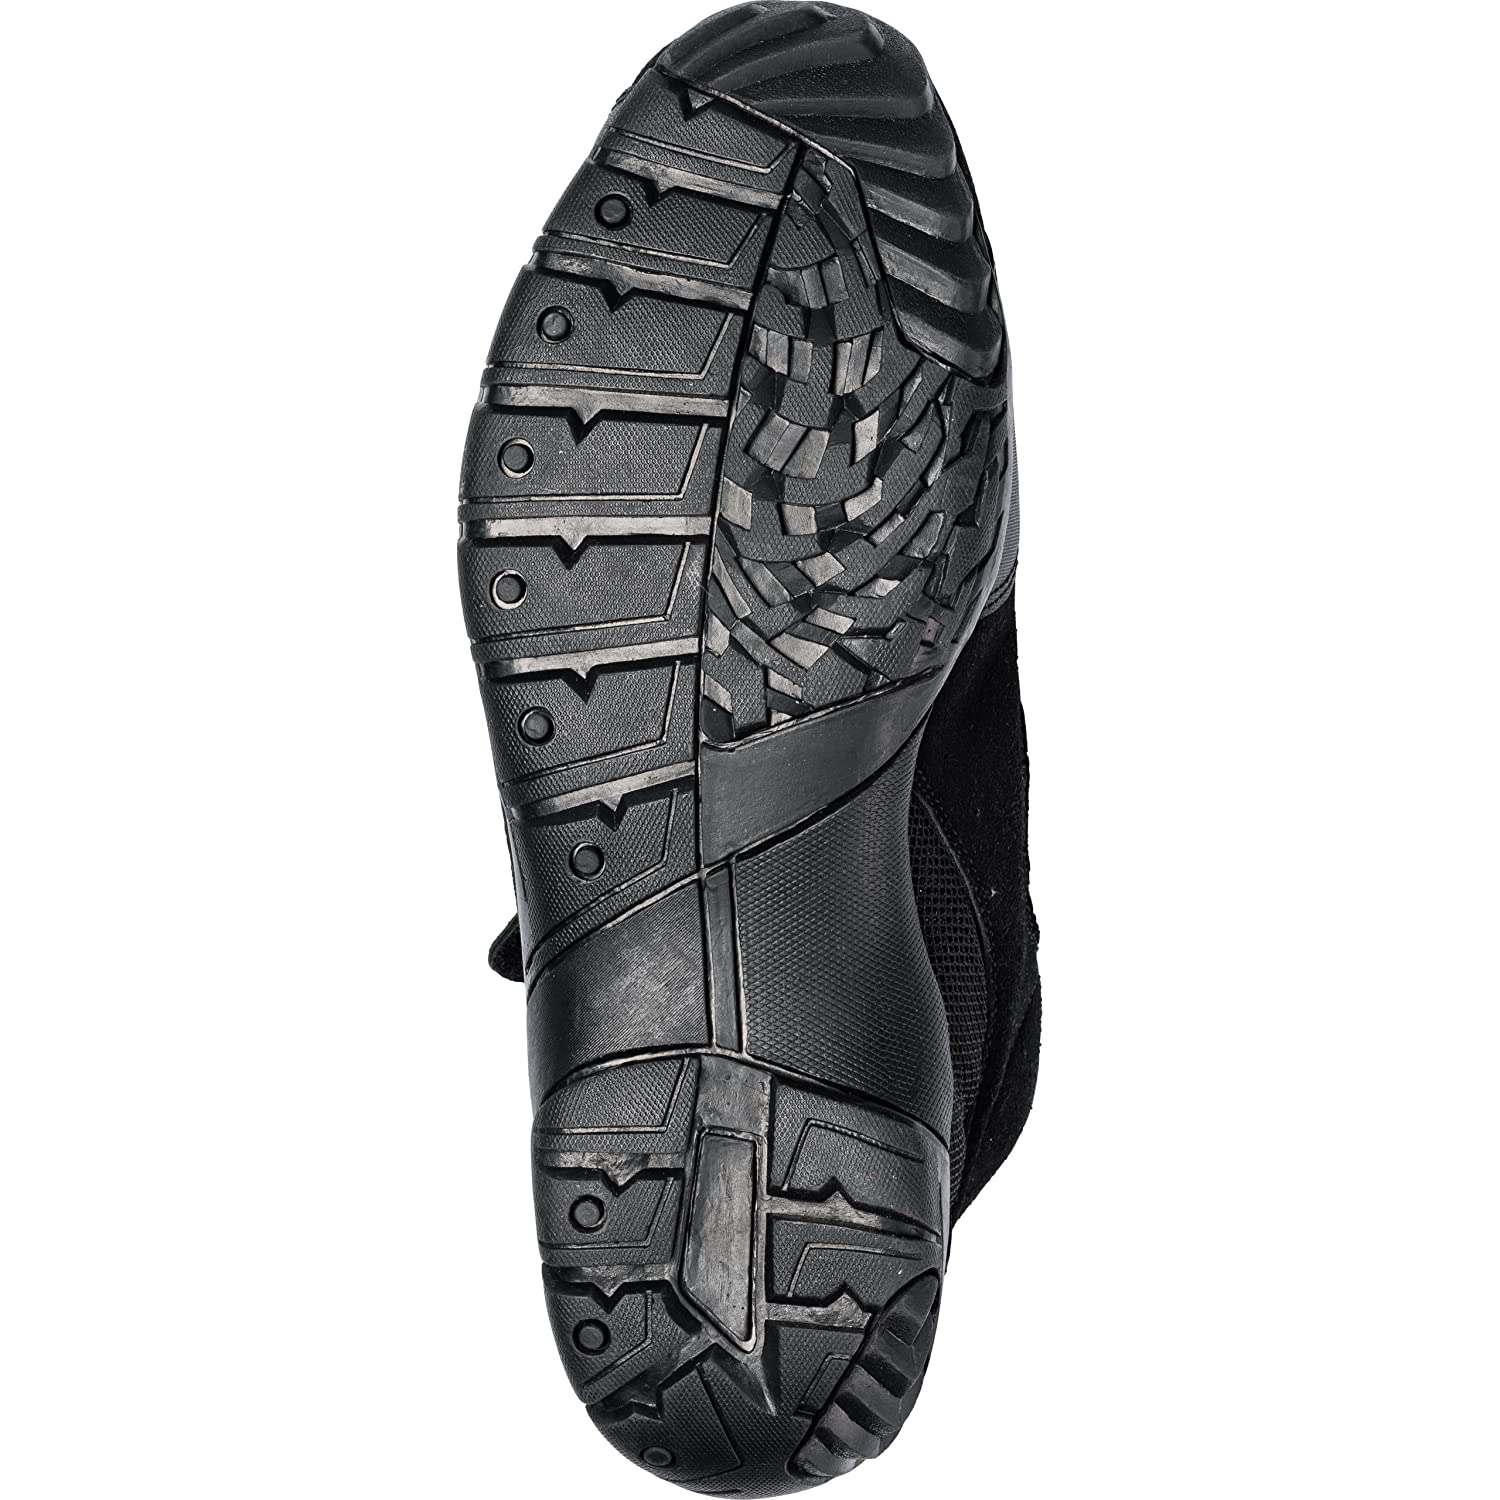 athletic shoe black 1.0,/motorcycle boots breathable lining comfortable lightweight sole men/'s and ladies shift padding Firefox motorbike boots Velcro fasteners for laces